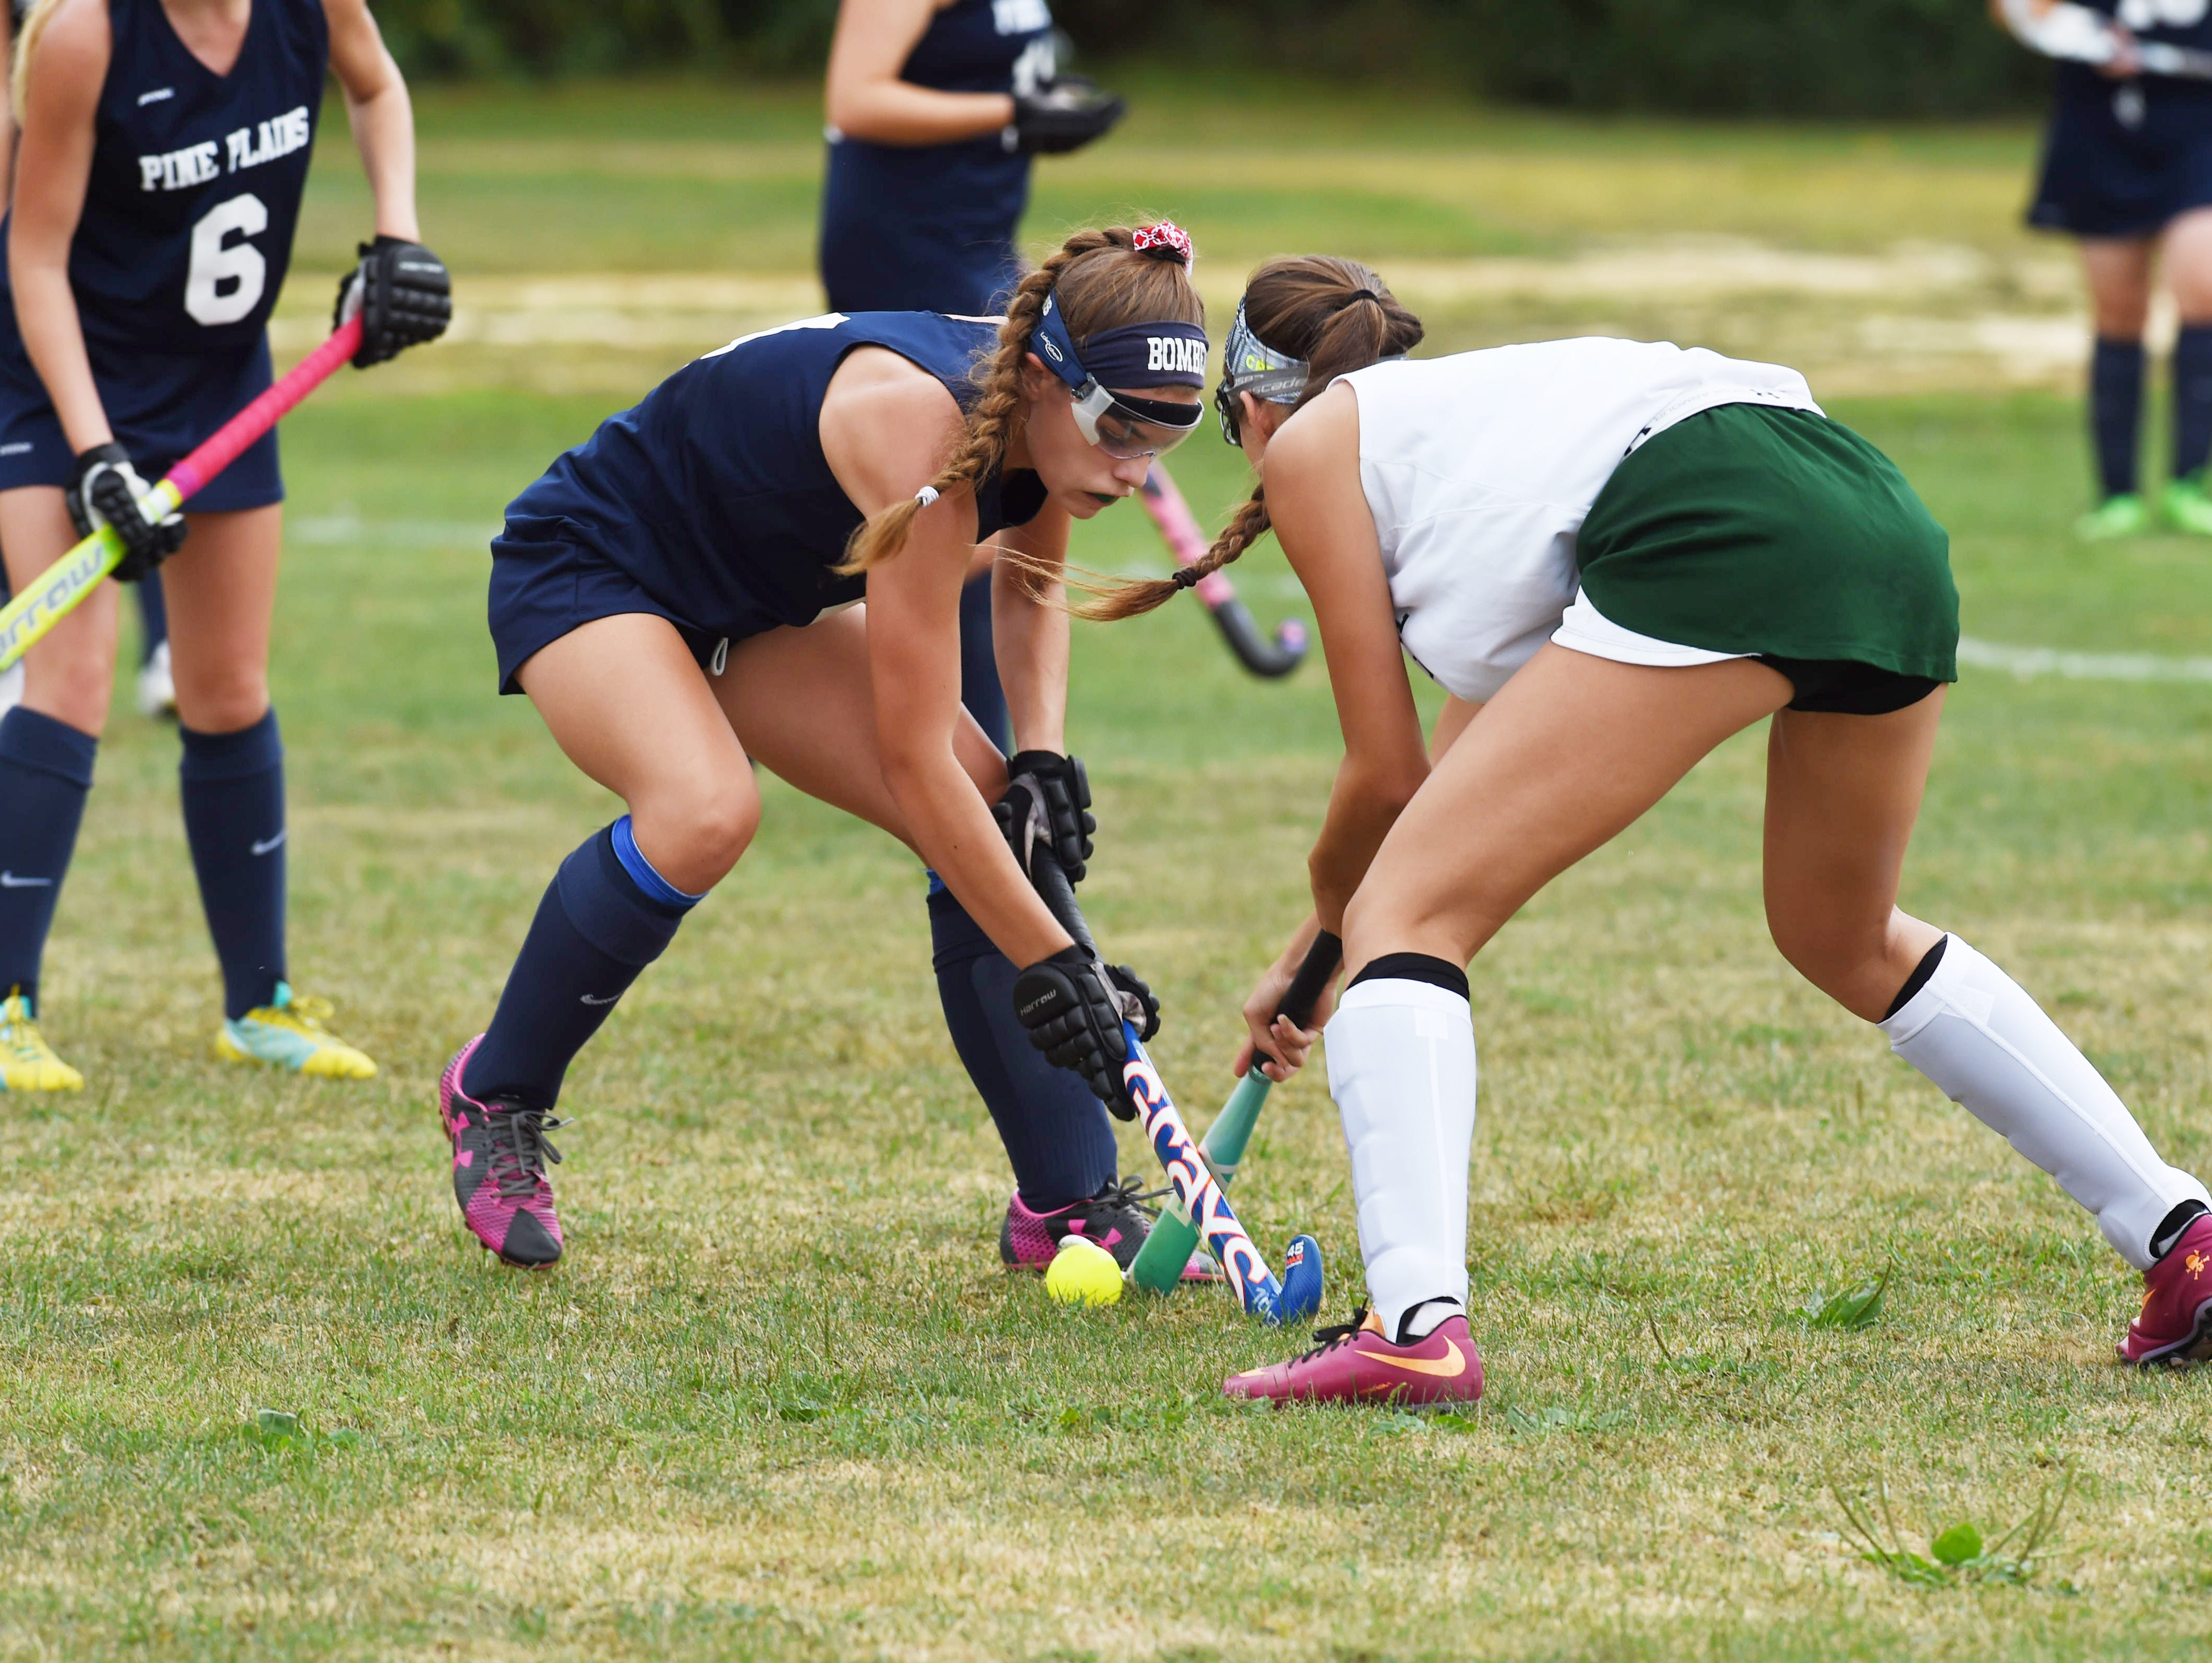 Pine Plains' Holly Bay, left, and Spackenkill's Amanda Izold, right, fight for the ball during Monday's game.